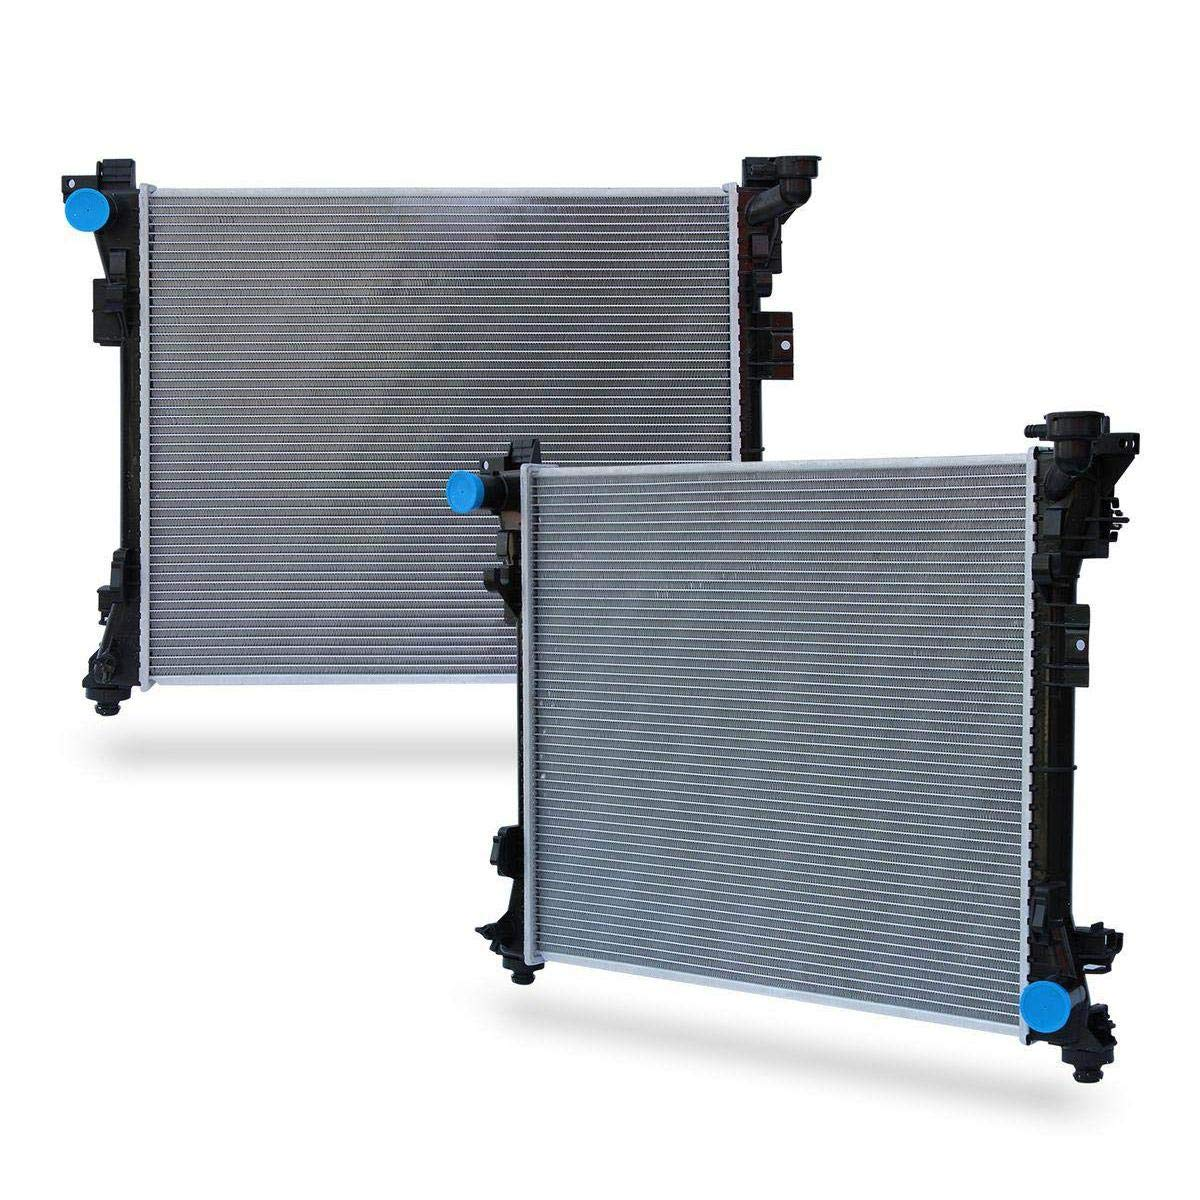 STAYCO 32mm Core Radiator Replacement for Chrysler Dodge Town Country Voyager Caravan 3.3 3.8